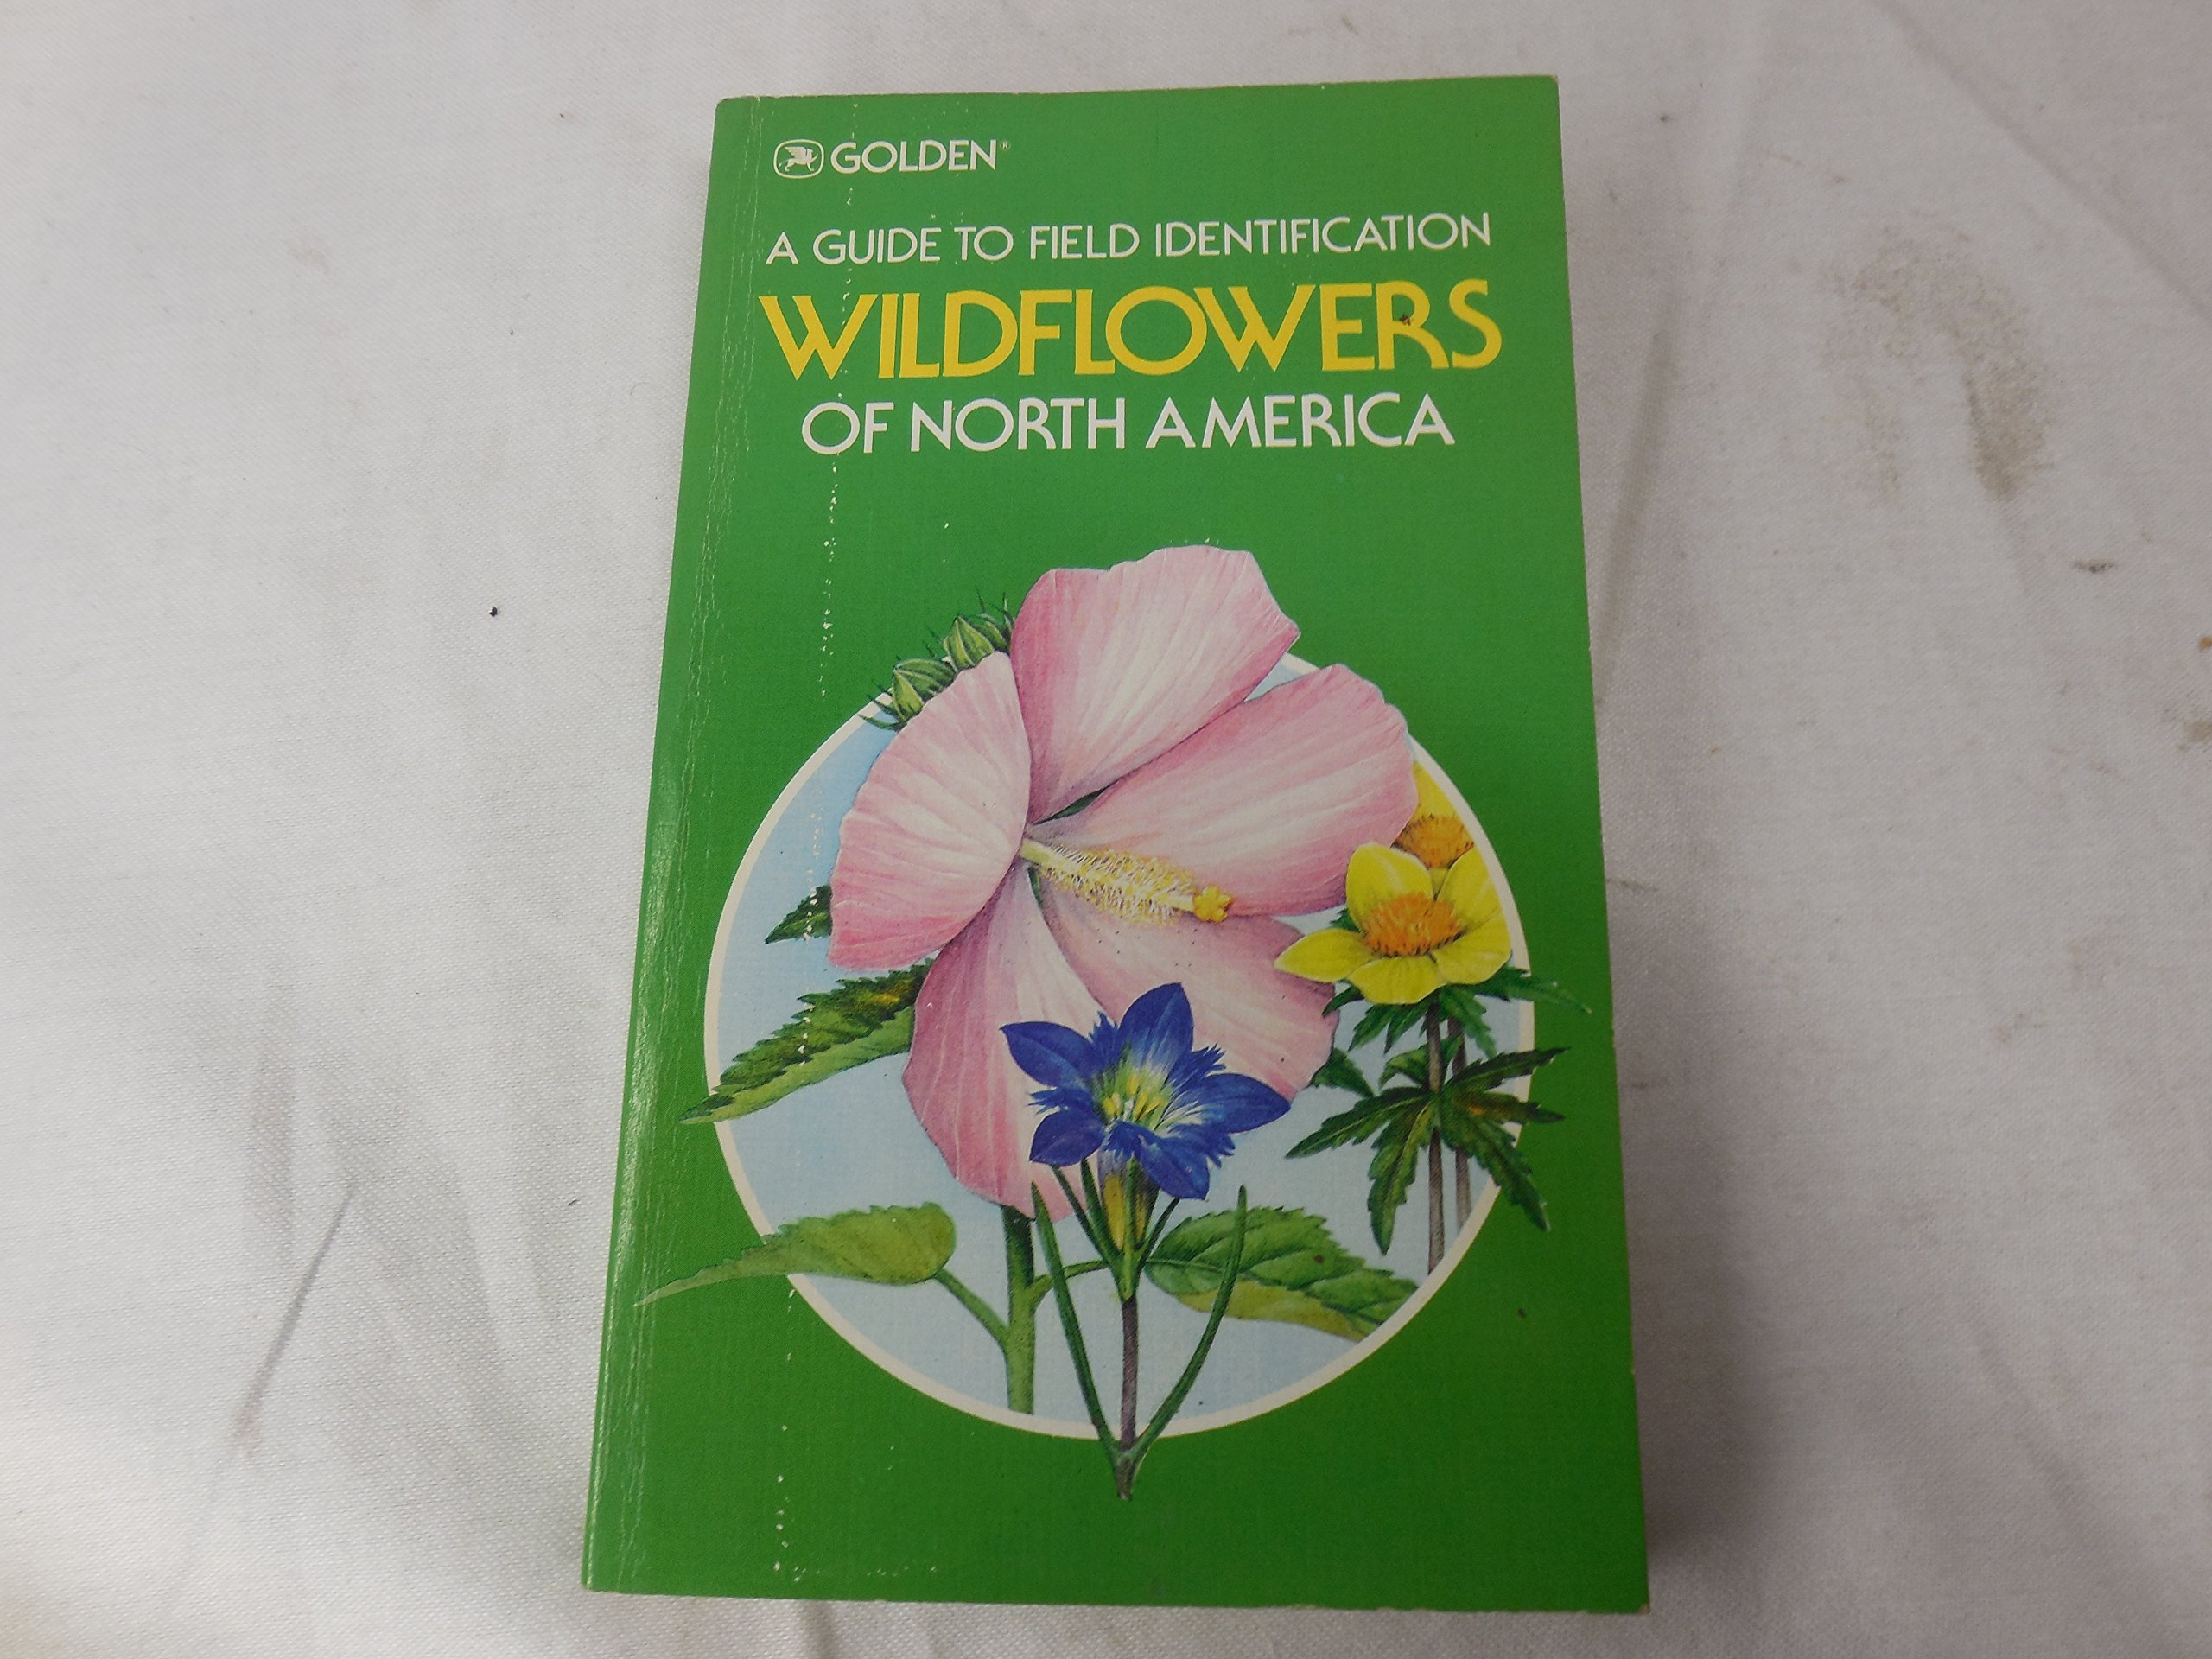 A Guide To Identification Wild Flowers North America